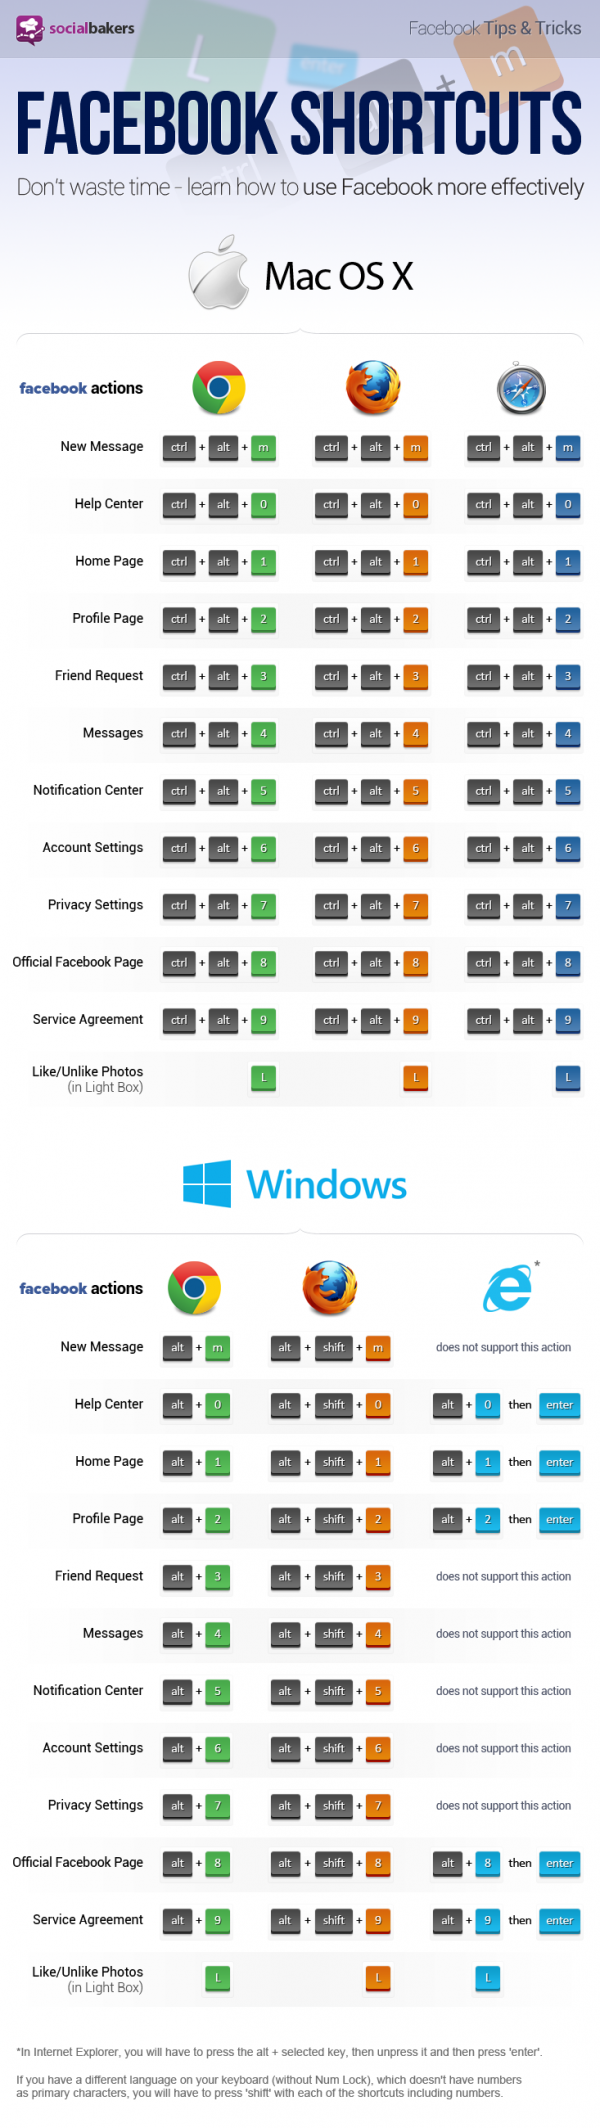 infographie-raccourcis-claviers-facebook-windows-apple